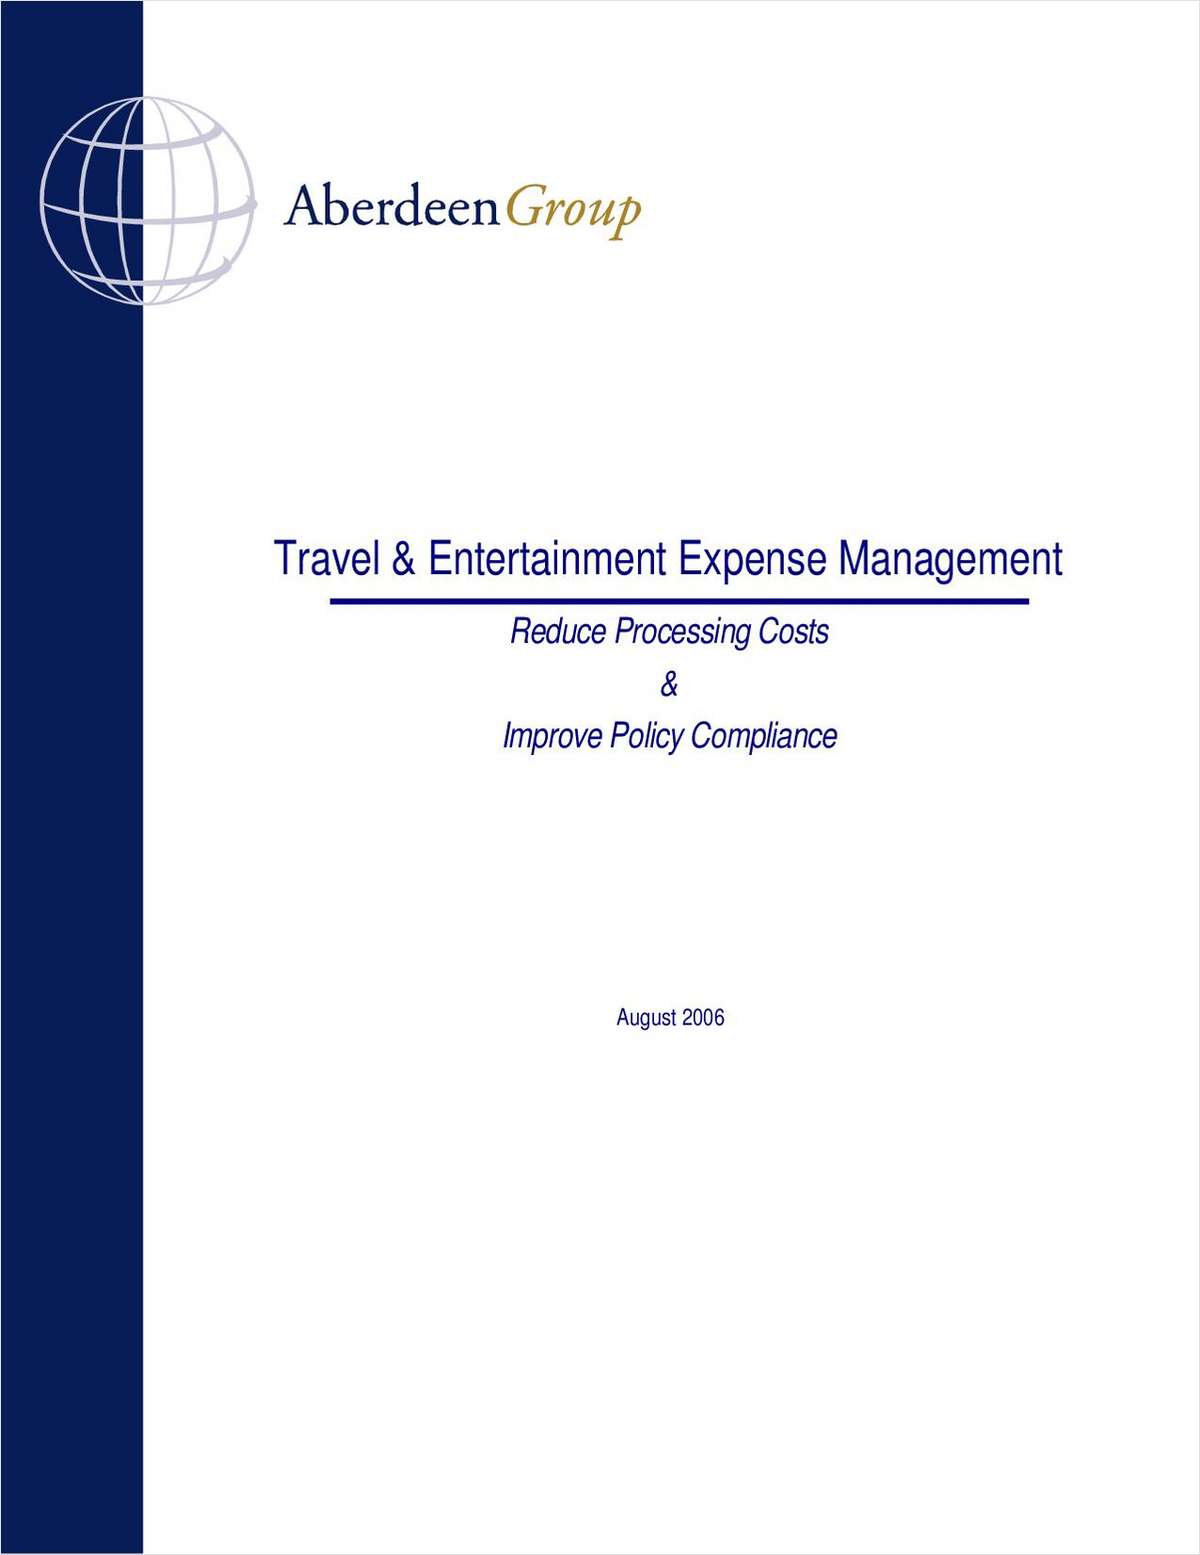 Reduce Travel & Expense Processing Costs & Improve Policy Compliance